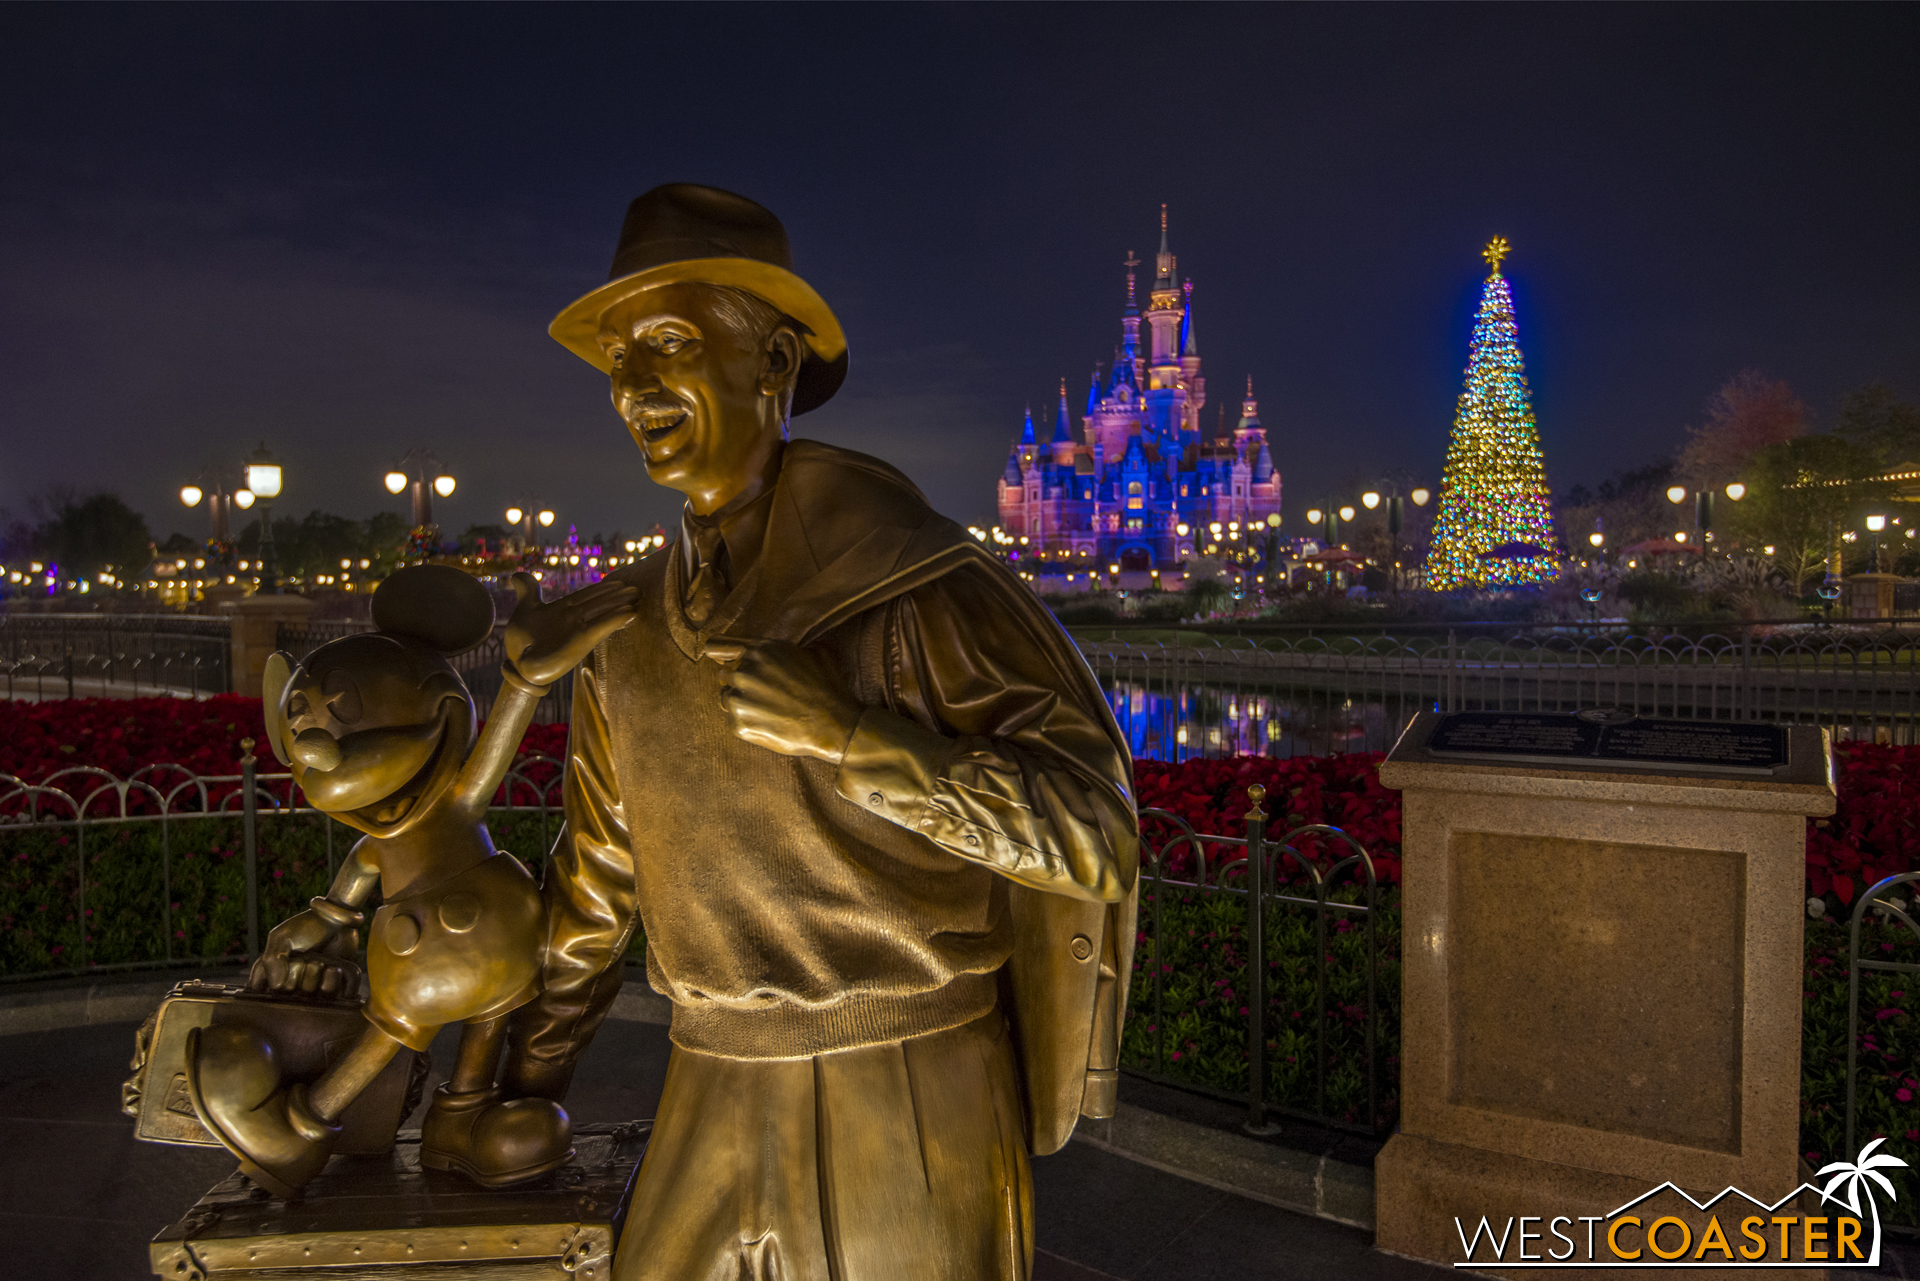 Frequent visitors of Disney California Adventure may find this statue familiar at Shanghai Disneyland.